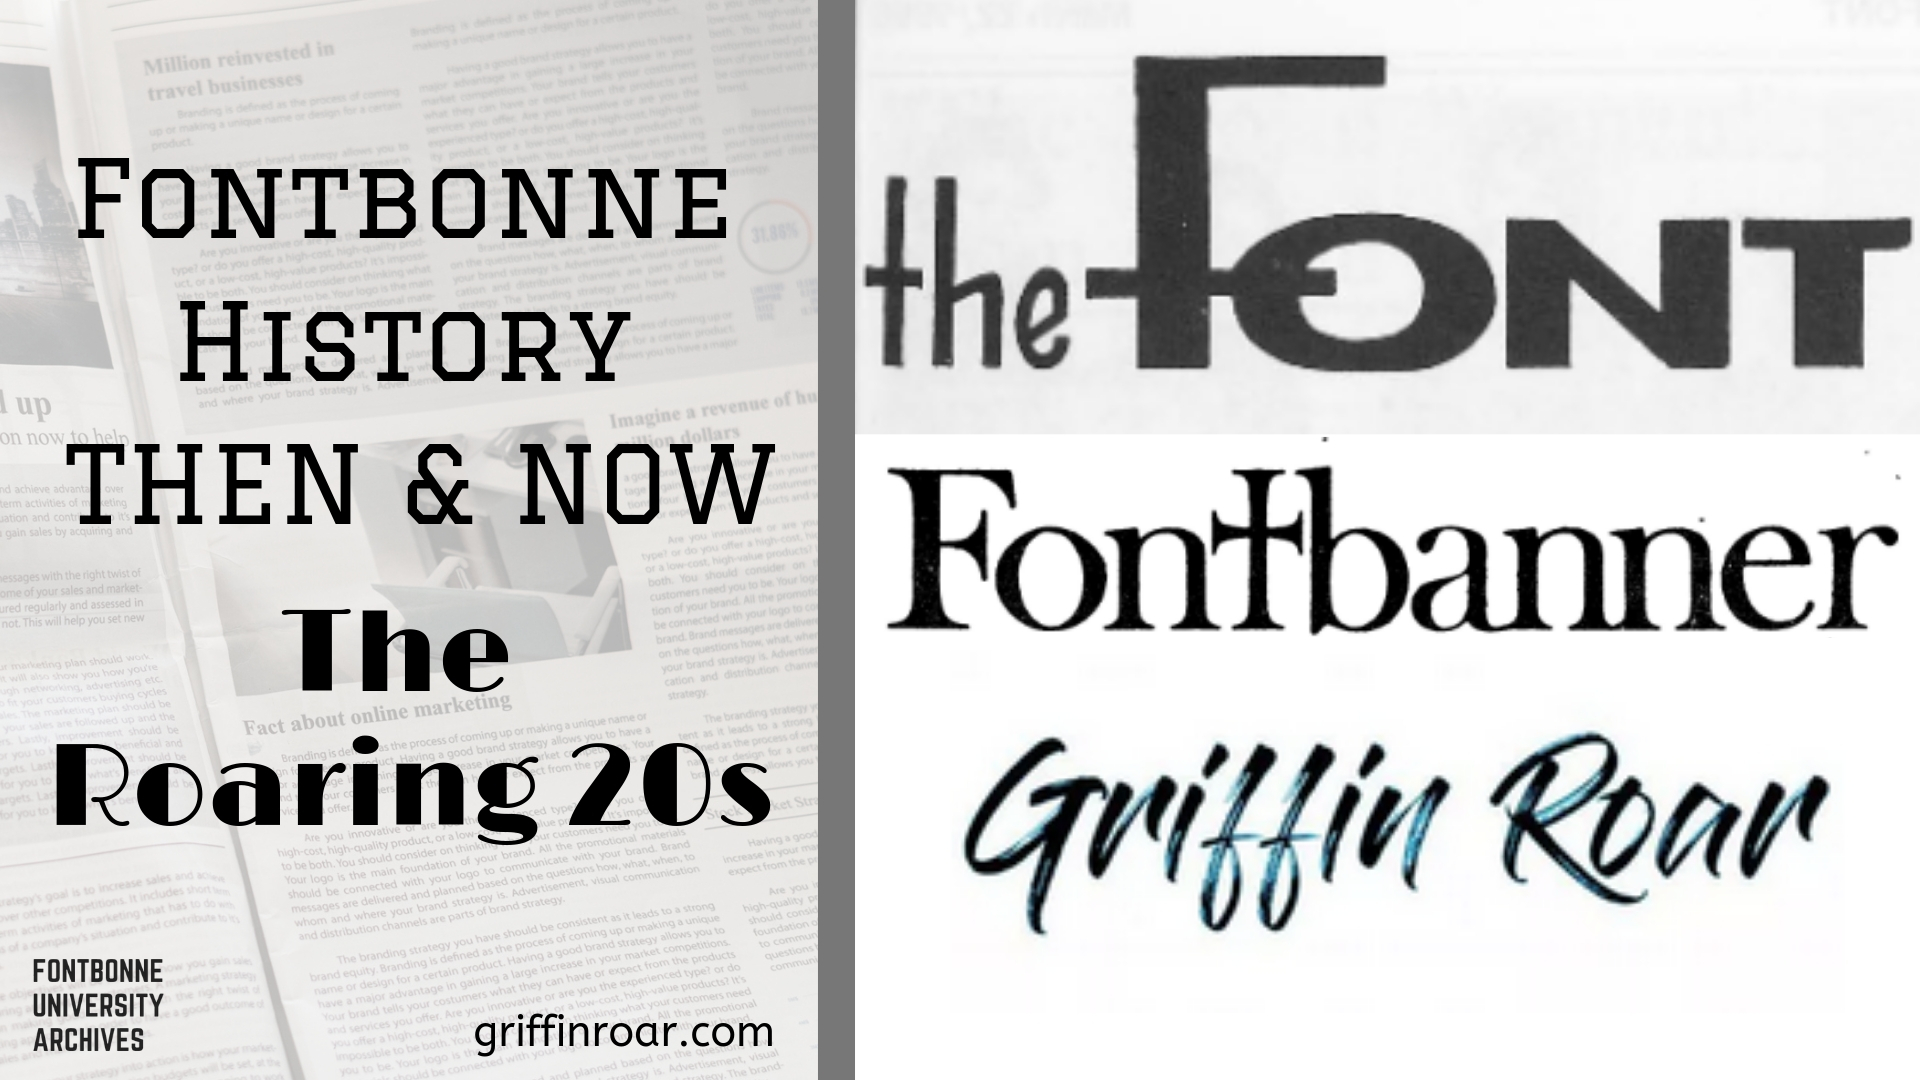 Read about the history of Fontbonne